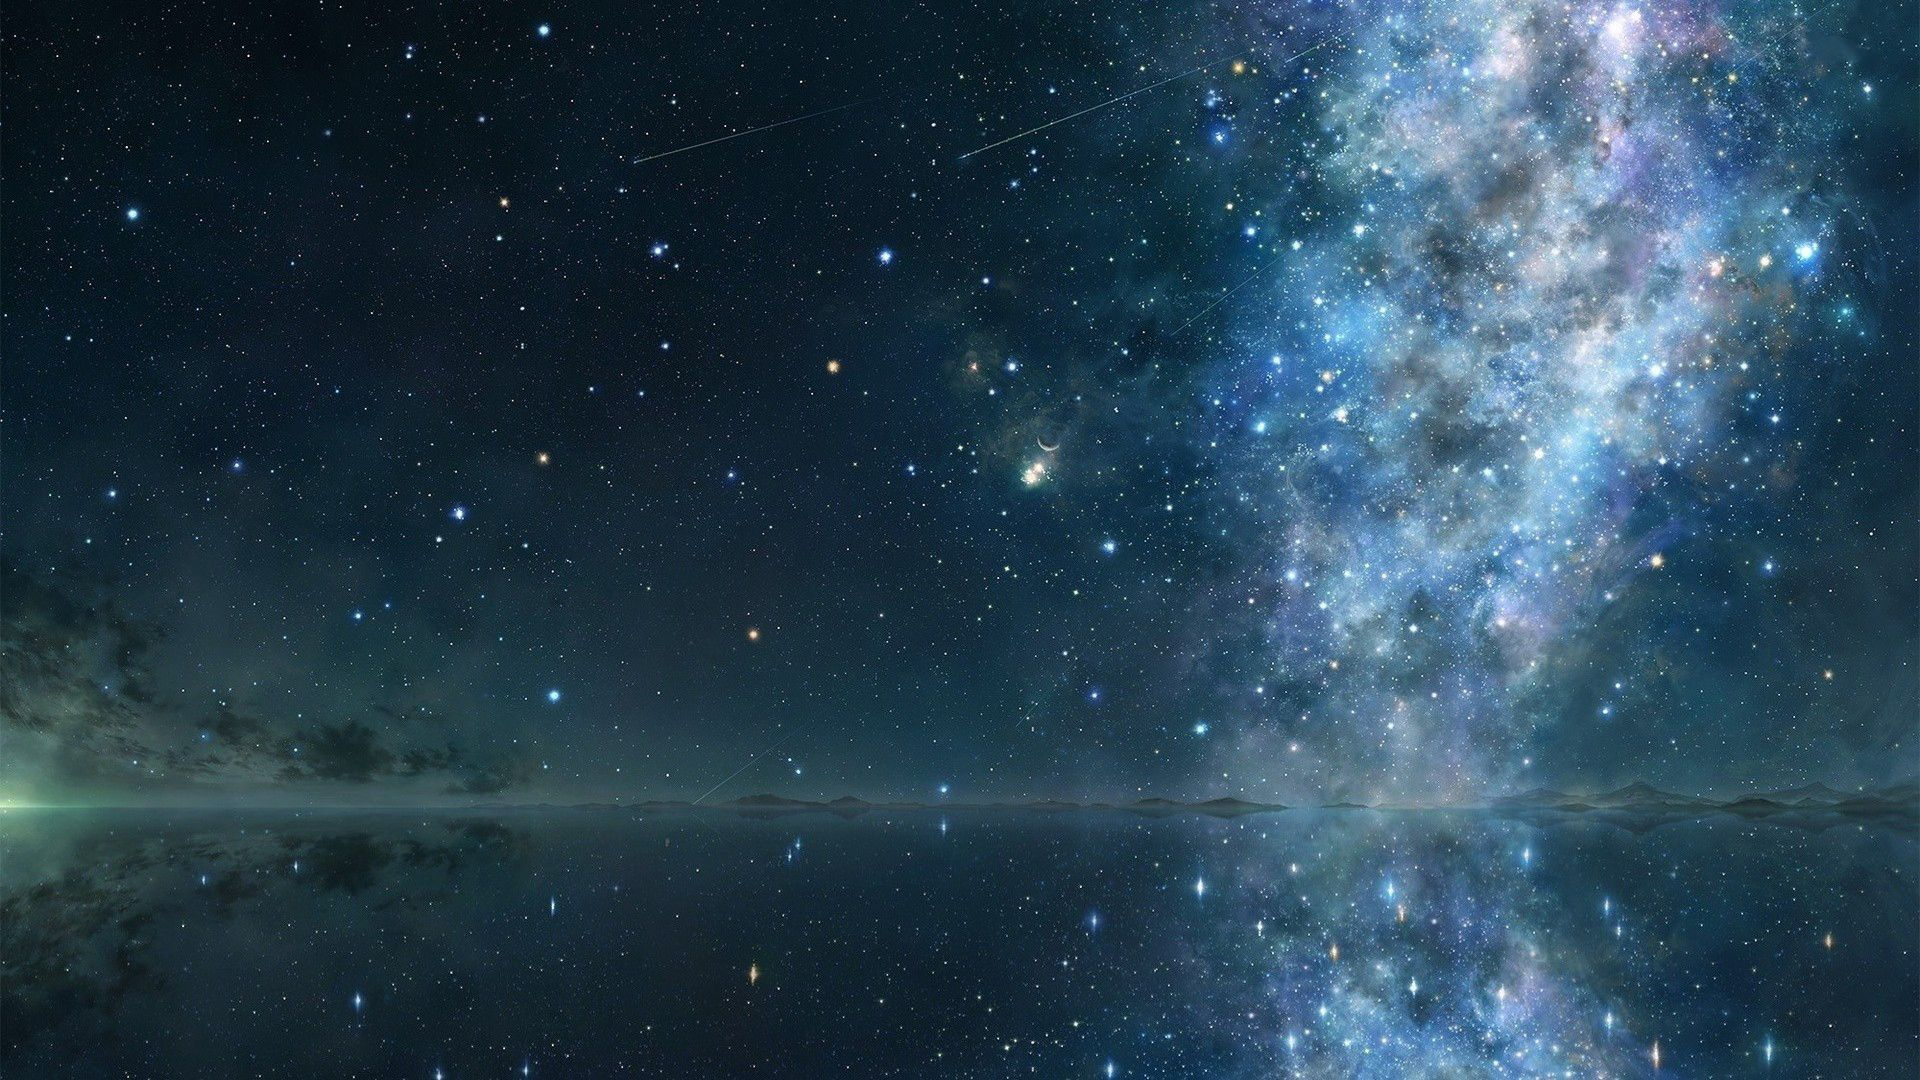 An otherworldly Milky Way stretches across the sky Wallpaper 1920x1080